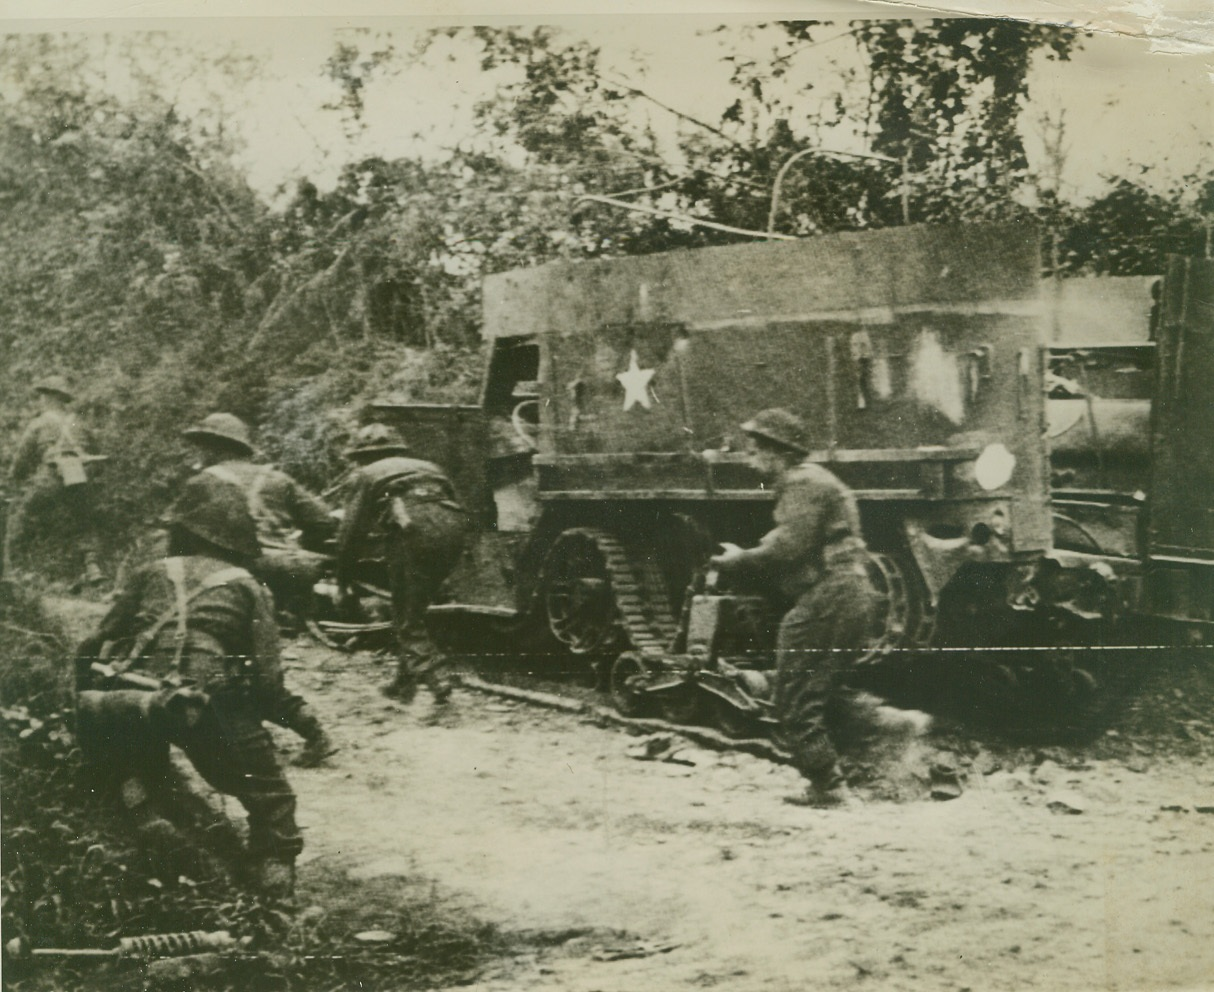 MOPPING UP, 8/7/1944. FRANCE – Crouching as they run, troops of the British Second Army dash ahead on a road near Tracy Bocage. The fighting men are mopping up during their army's advance across France. Credit: British official photo via U.S. Signal Corps radiotelephoto from ACME;